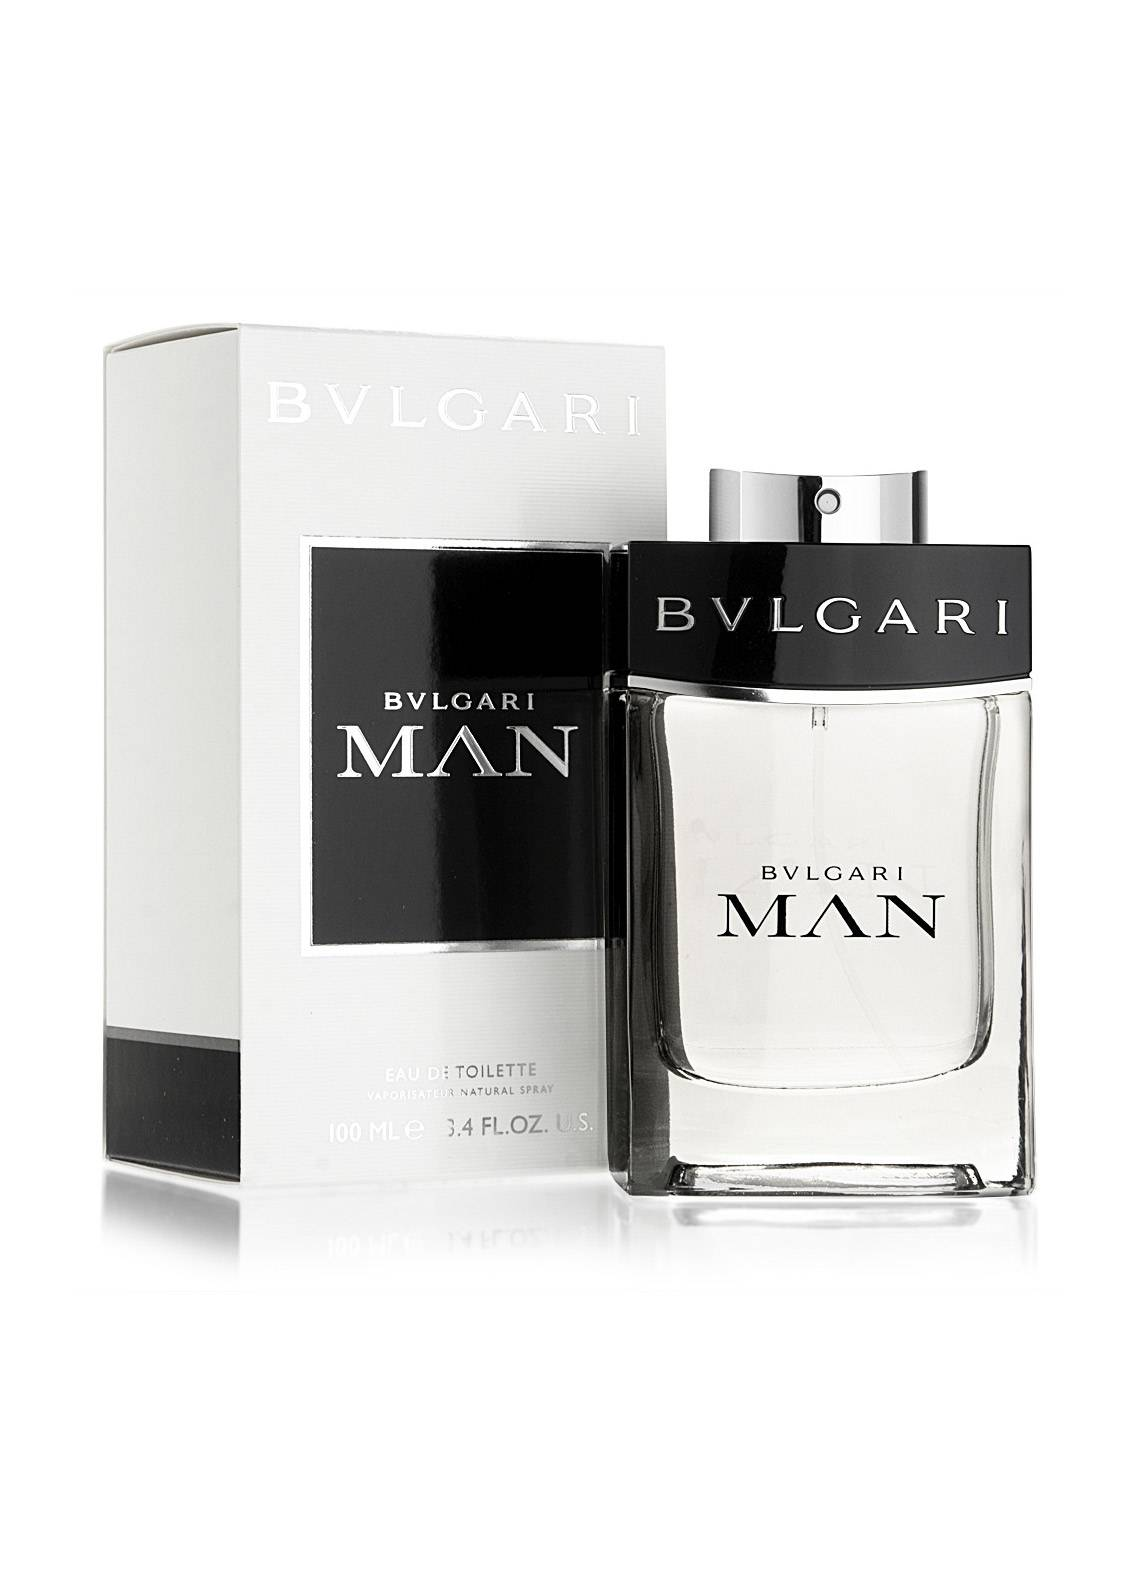 Bvlgari Perfumes Bvlgari Perfumes For Men Women In Pakistan